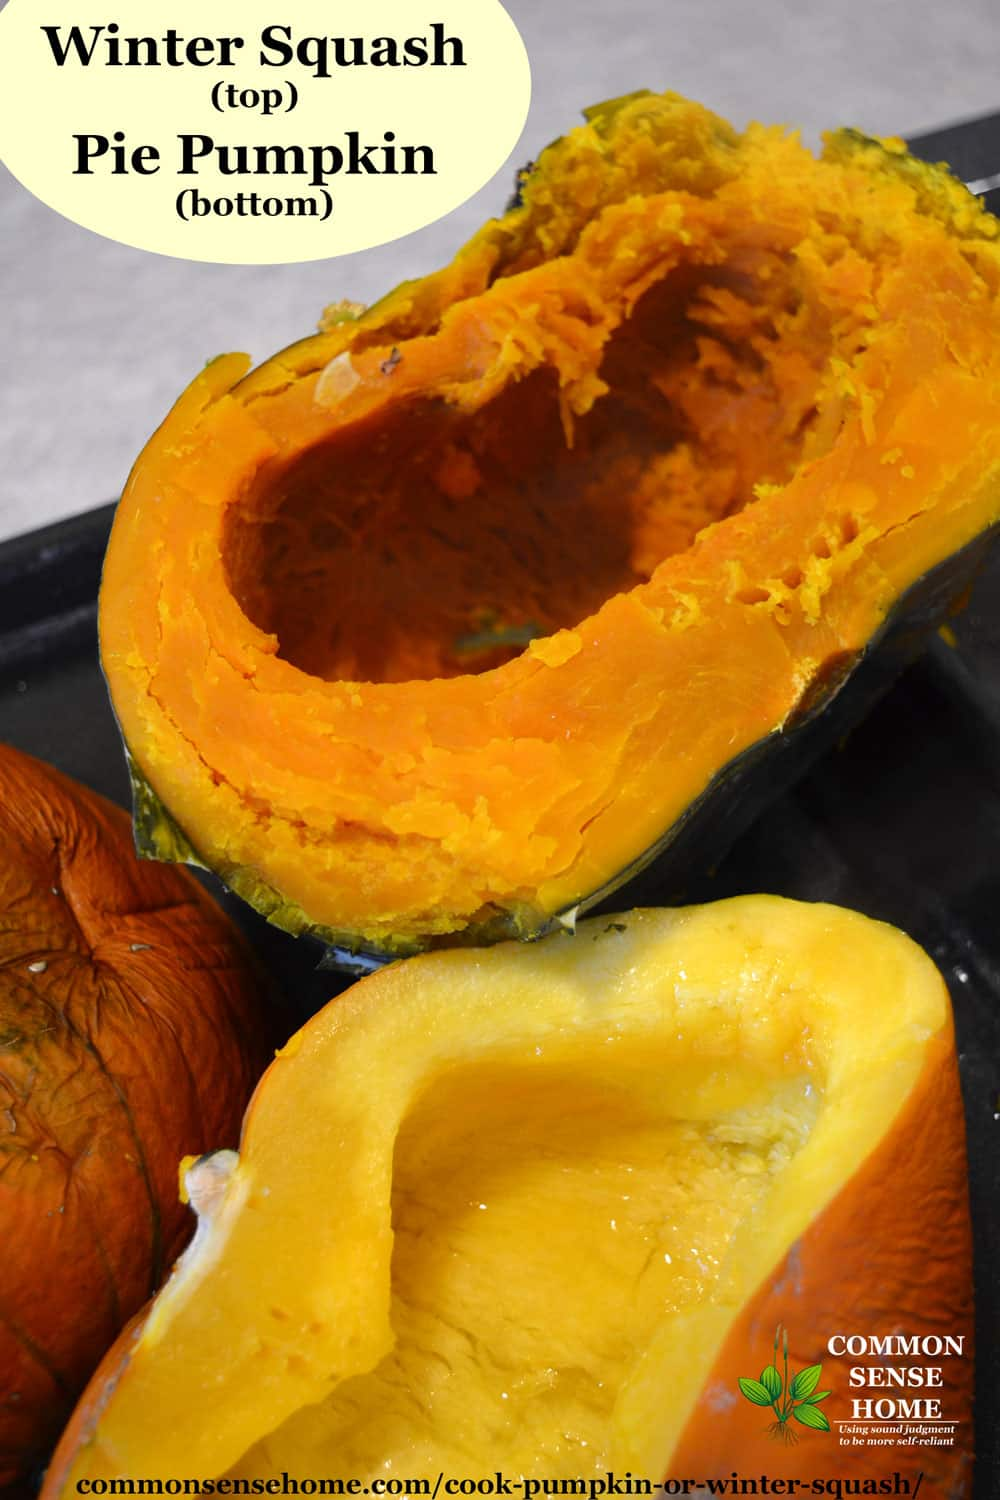 cooking pumpkin and winter squash